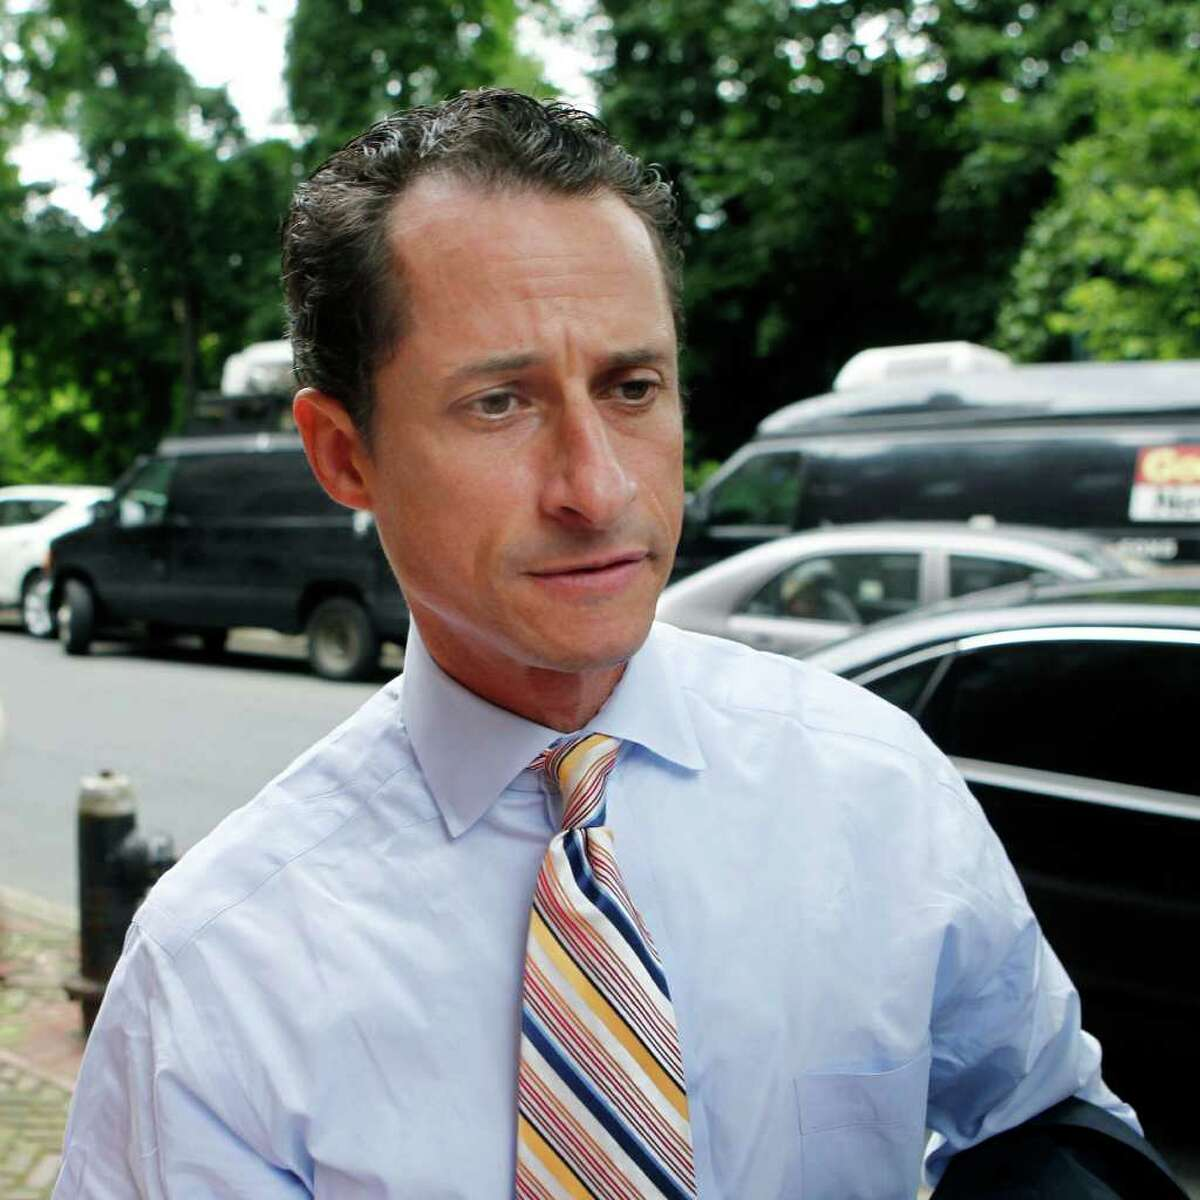 Anthony Weiner returns home after he announced his resignation from Congress Thursday, June 16, 2011 in the Queens borough of New York. Weiner resigned from Congress, saying he cannot continue in office amid the intense controversy surrounding sexually explicit messages he sent online to several women. (